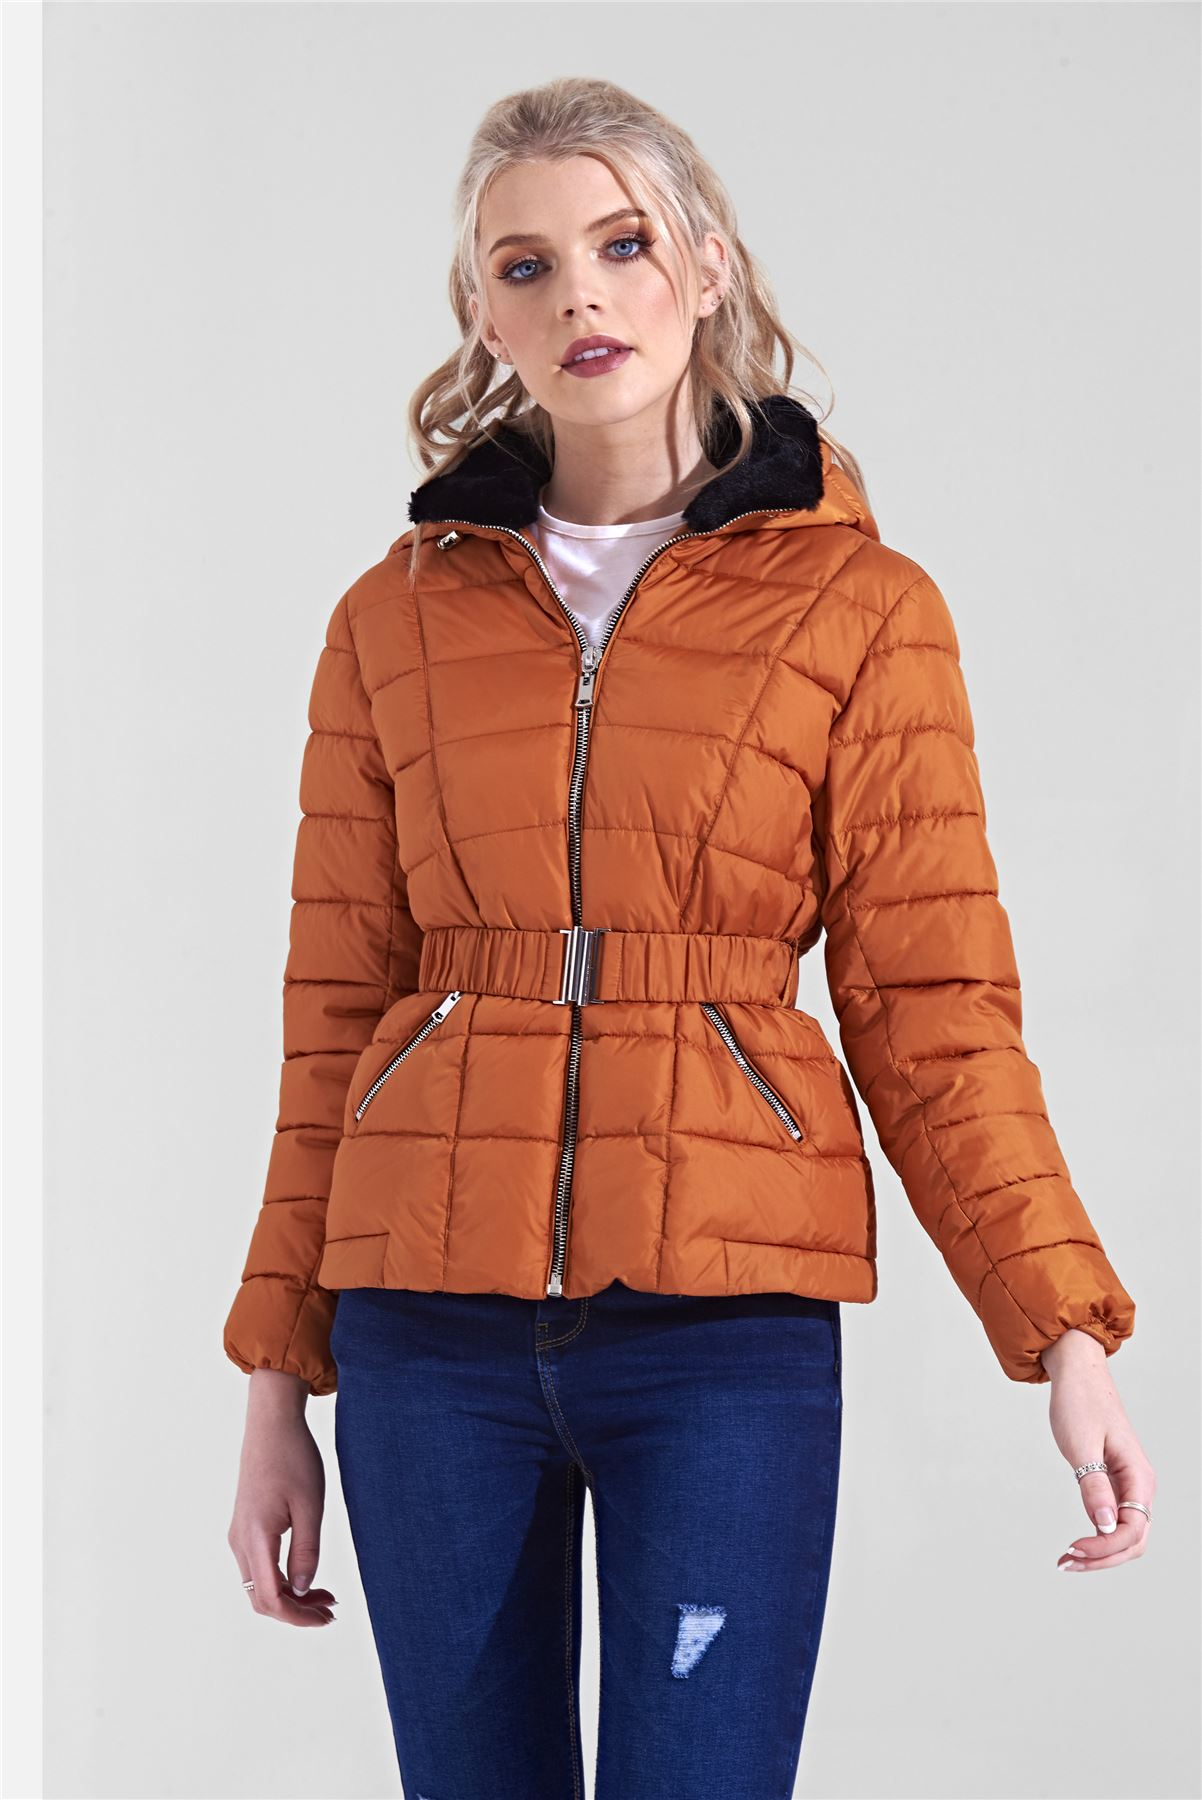 Womens-Ladies-Black-Hood-Belted-Fur-Collar-Zip-Up-Quilted-Puffer-Jacket-Coat thumbnail 4